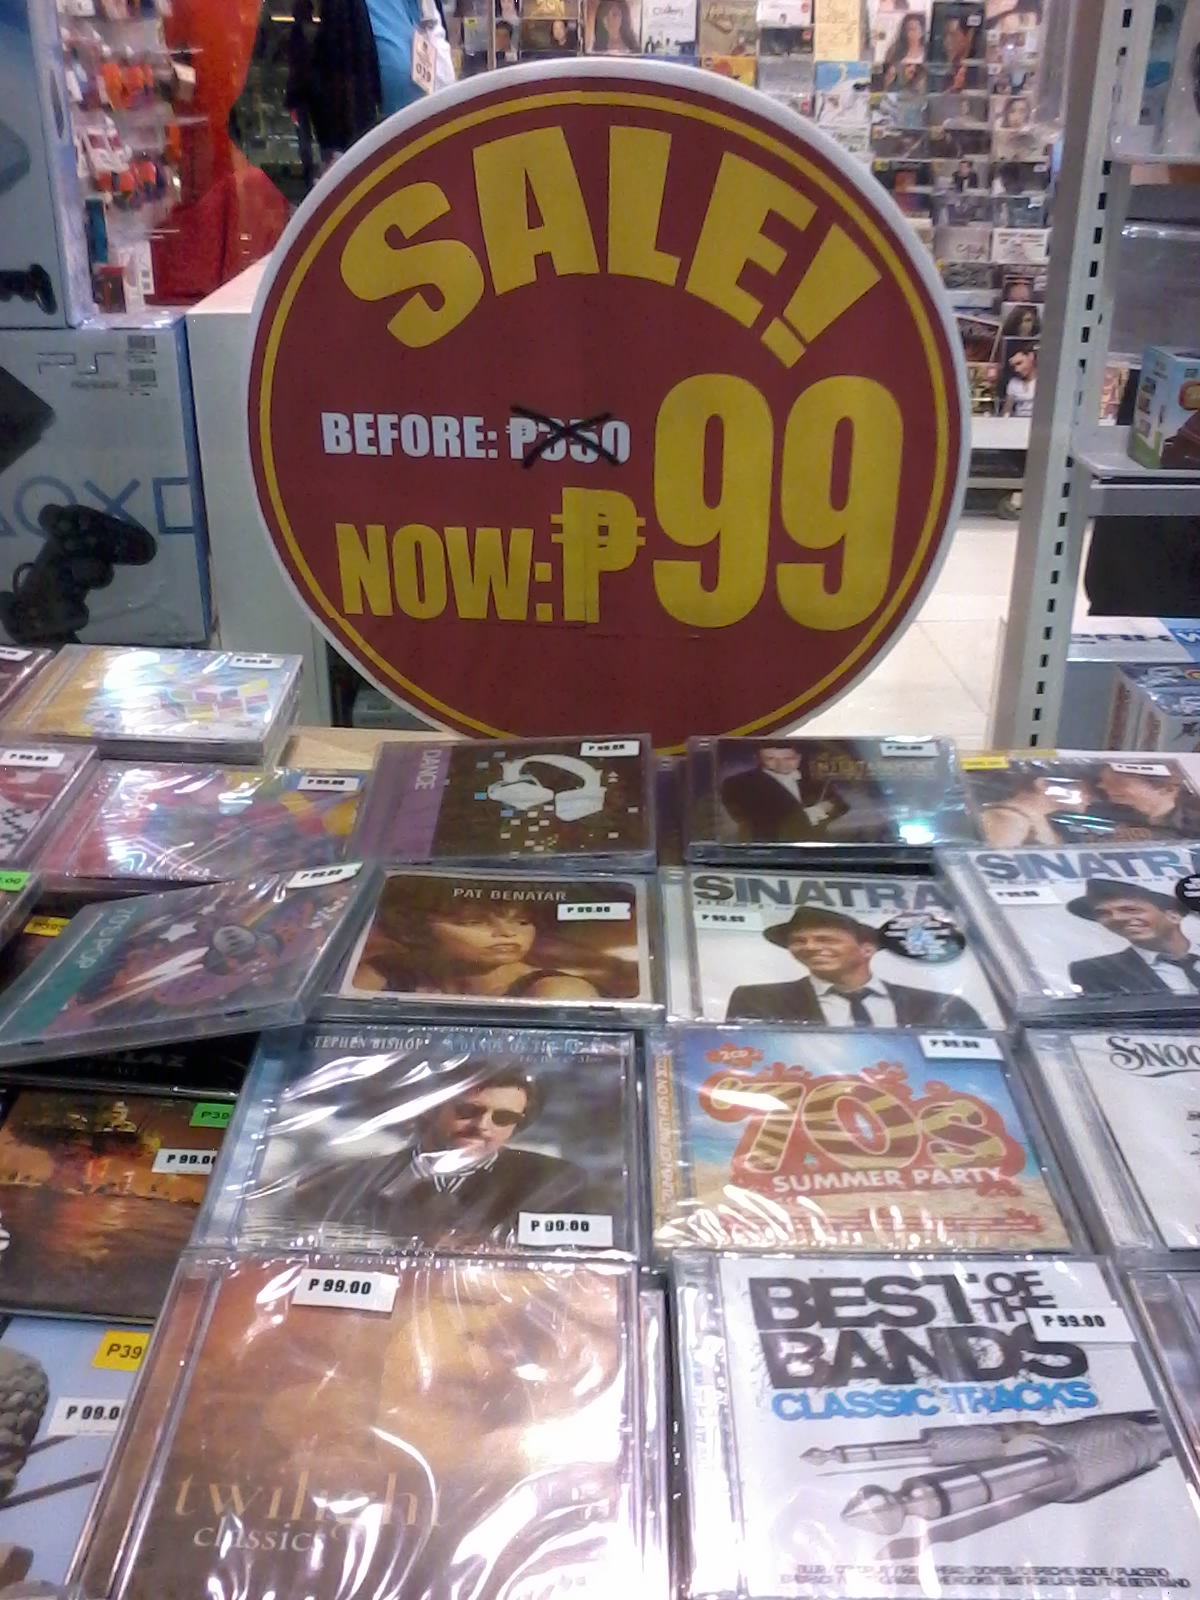 Music CDs at P99